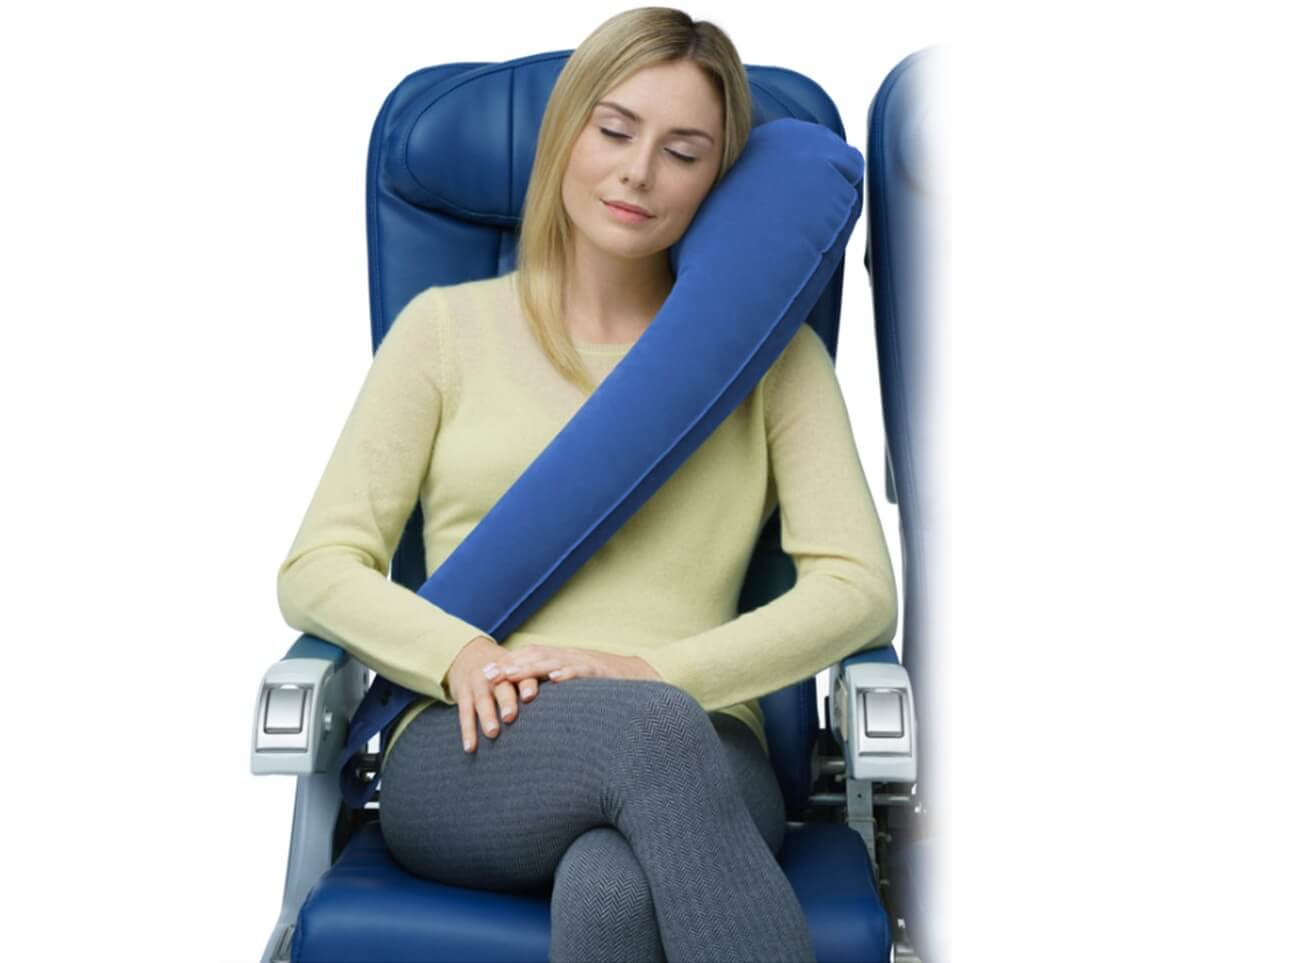 The Ultimate Travel Pillow by Travelrest